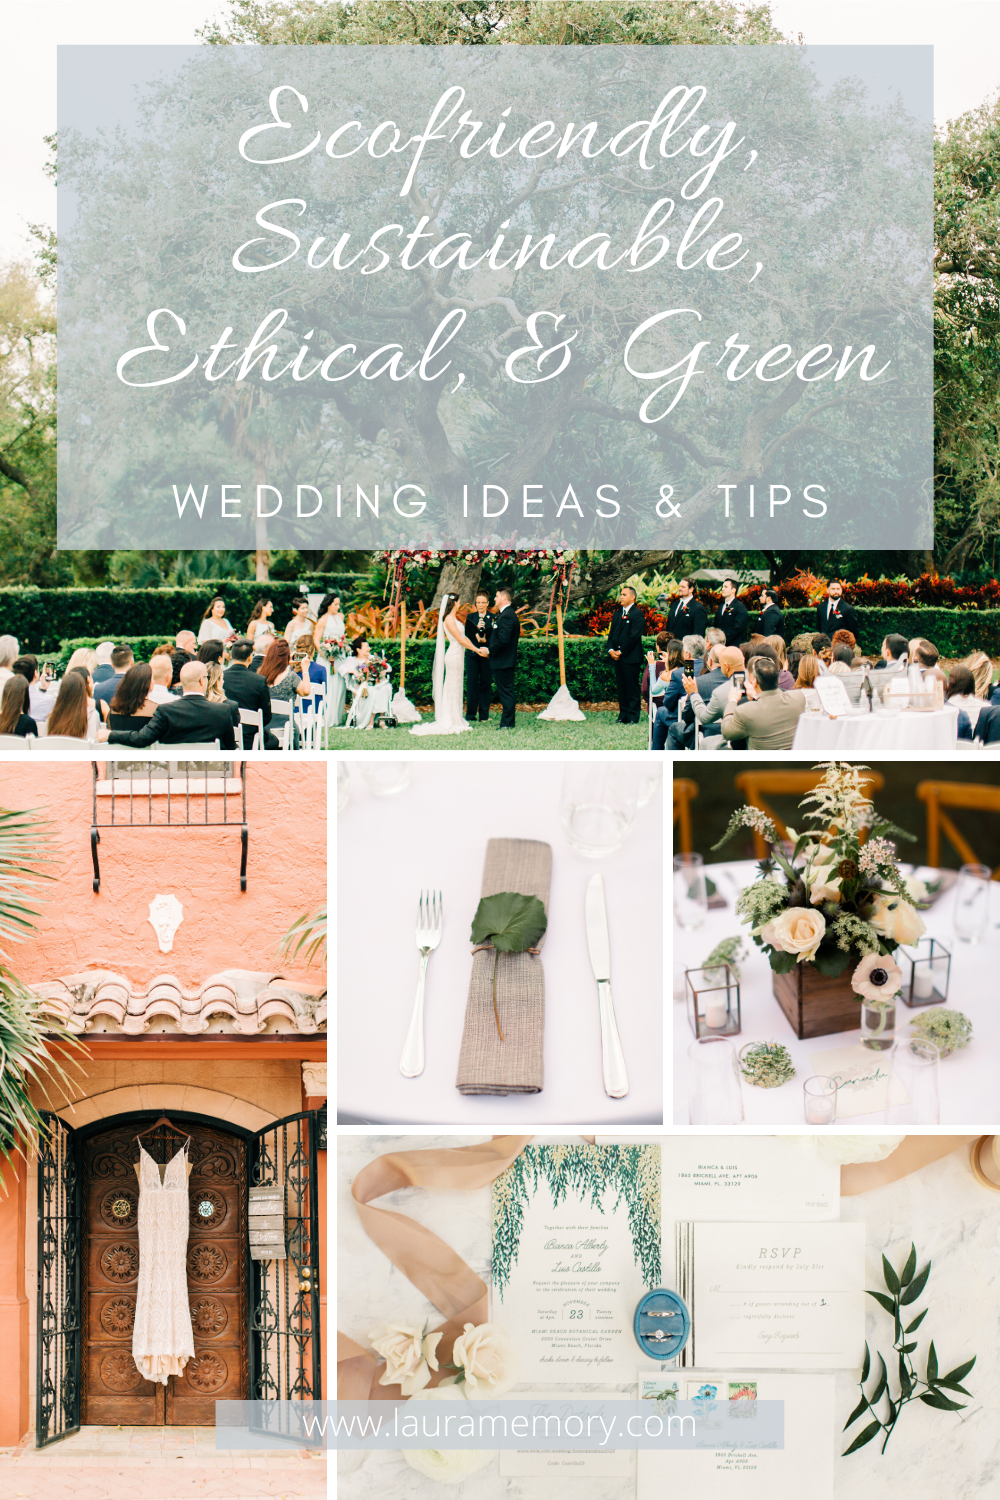 10 Tips To Make Your Wedding Day Eco Friendly | How to Have a Sustainable Wedding | Green Wedding Tips